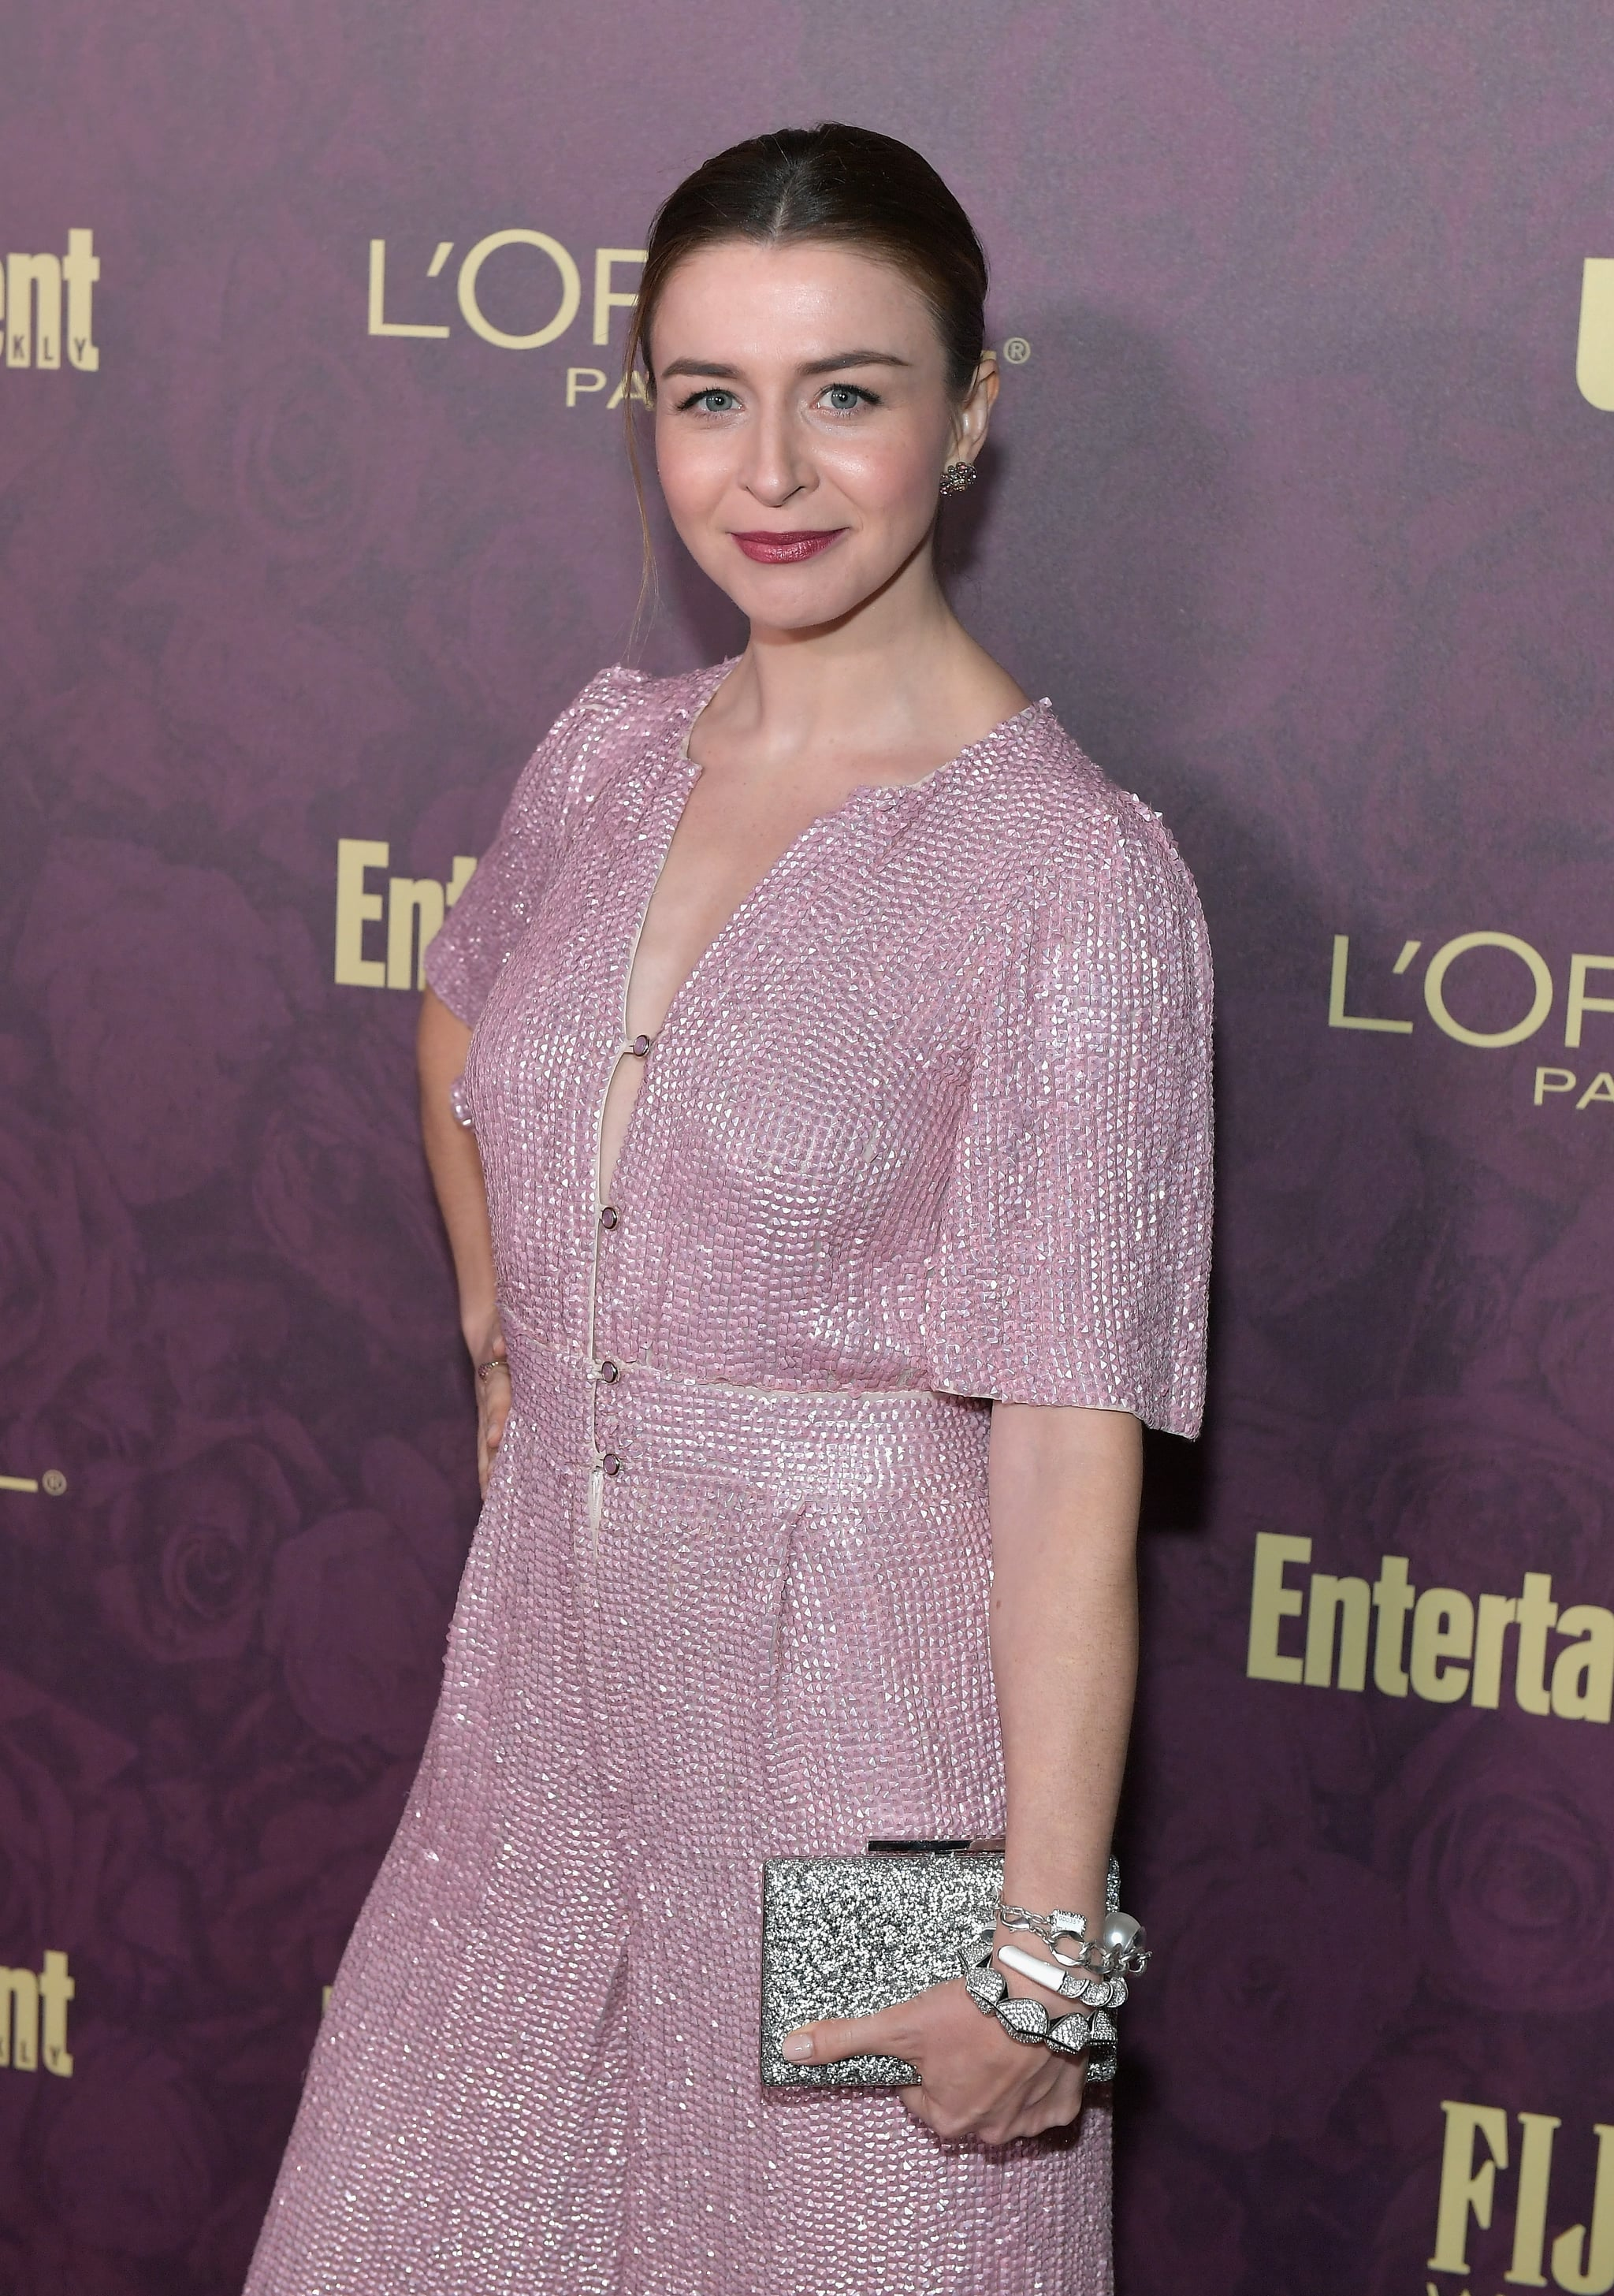 LOS ANGELES, CA - SEPTEMBER 15:  Caterina Scorsone attends the 2018 Pre-Emmy Party hosted by Entertainment Weekly and L'Oreal Paris at Sunset Tower on September 15, 2018 in Los Angeles, California.  (Photo by Neilson Barnard/Getty Images for Entertainment Weekly)